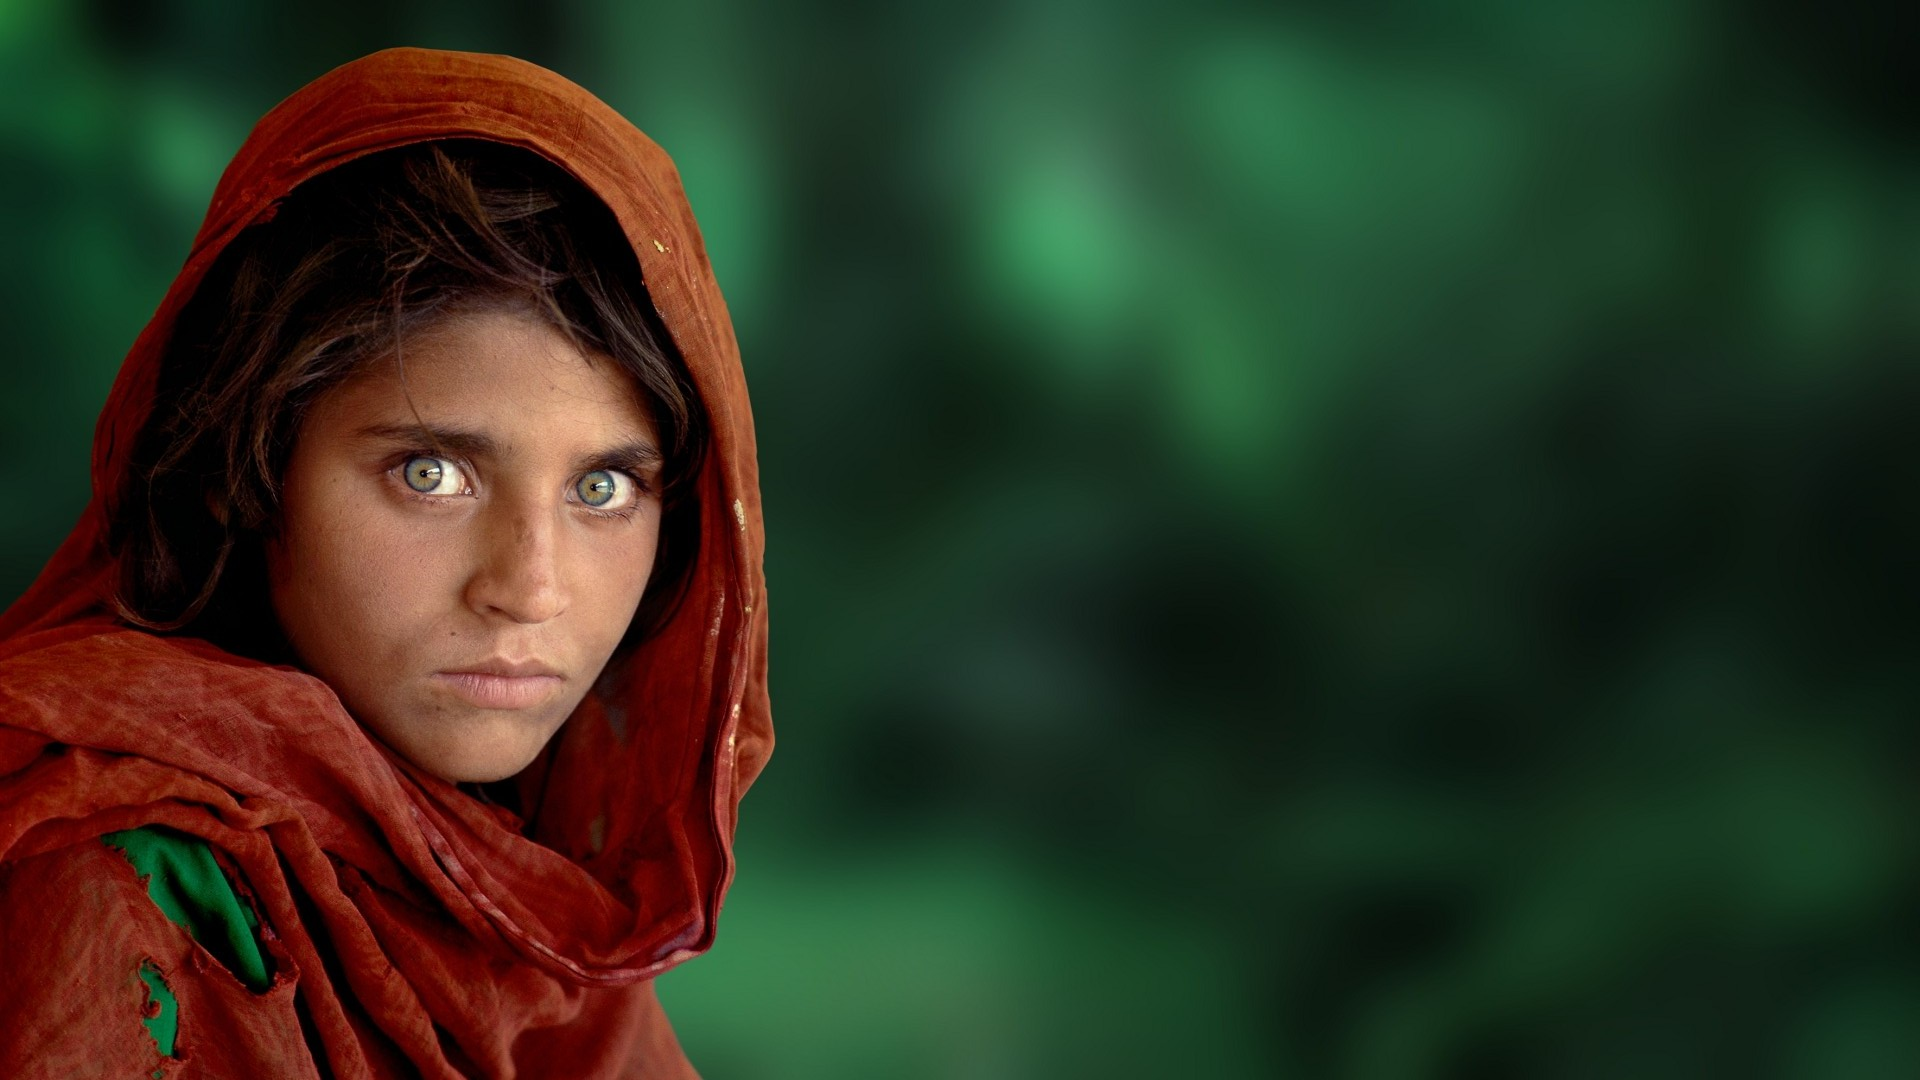 Mostra Icons di Steve McCurry a Firenze